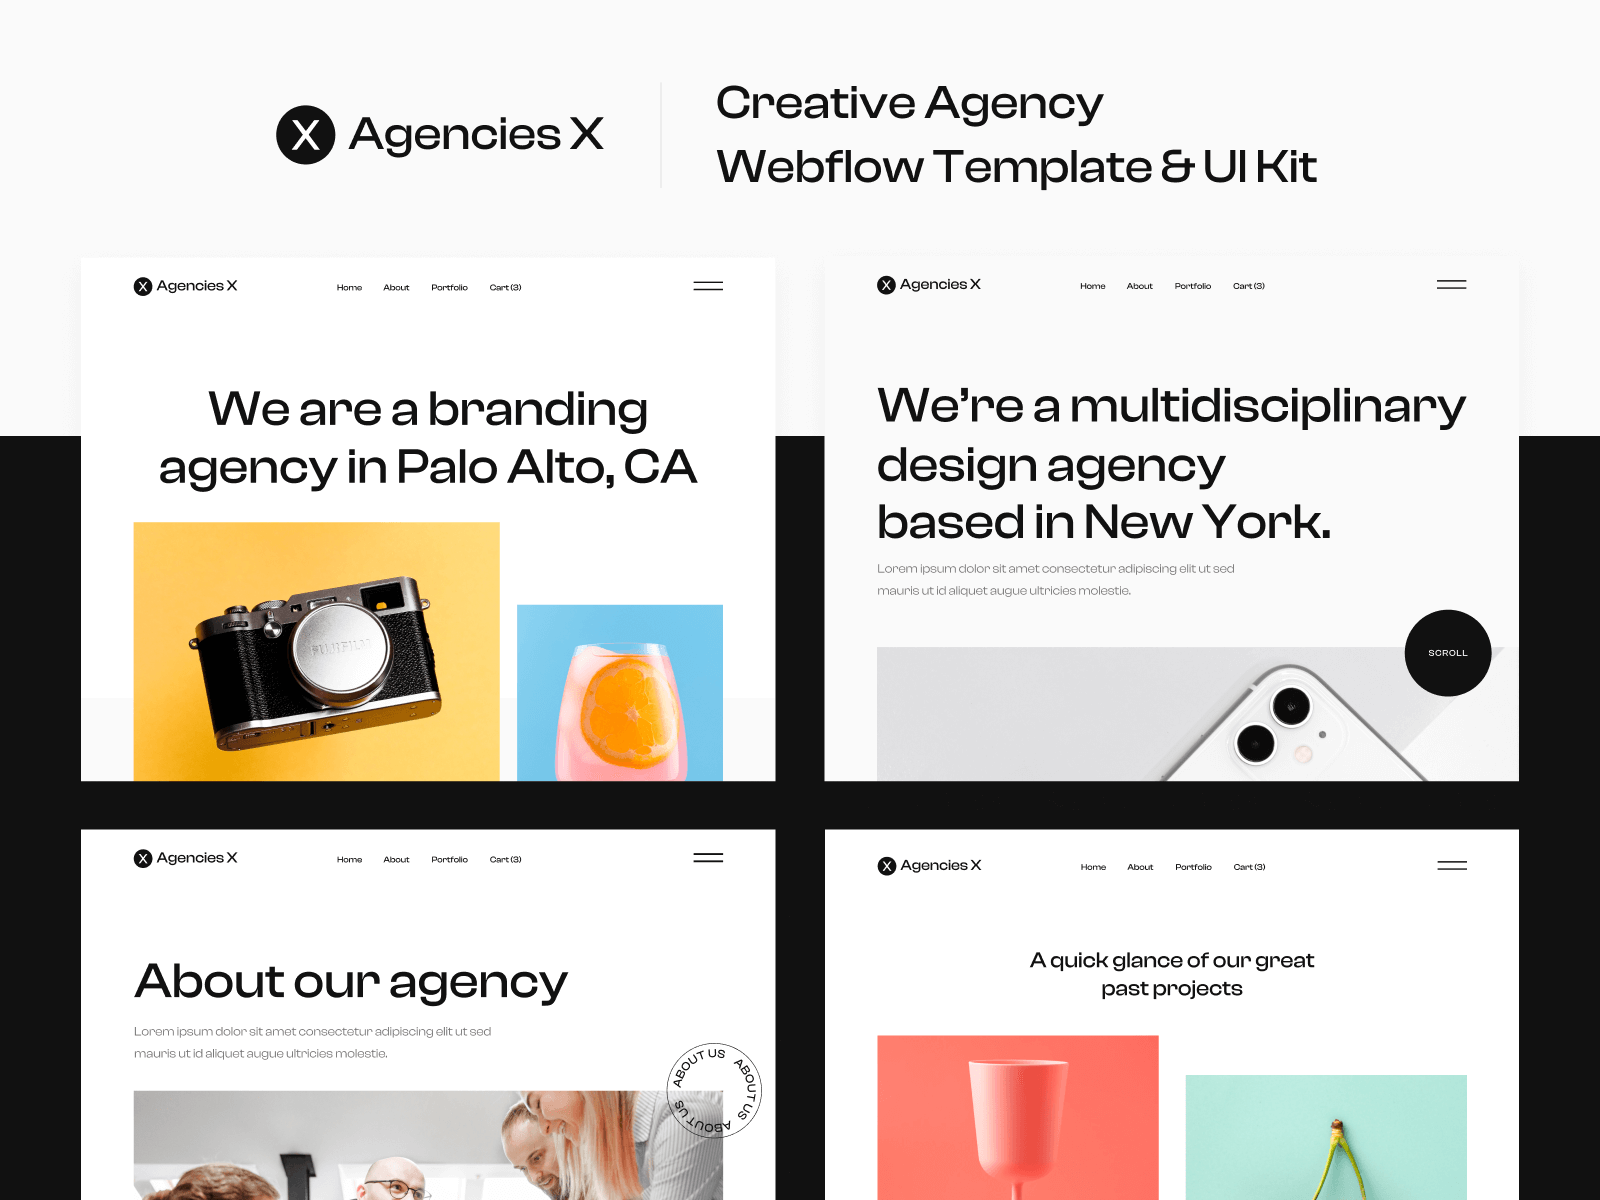 Agency Webflow Template and UI Kit